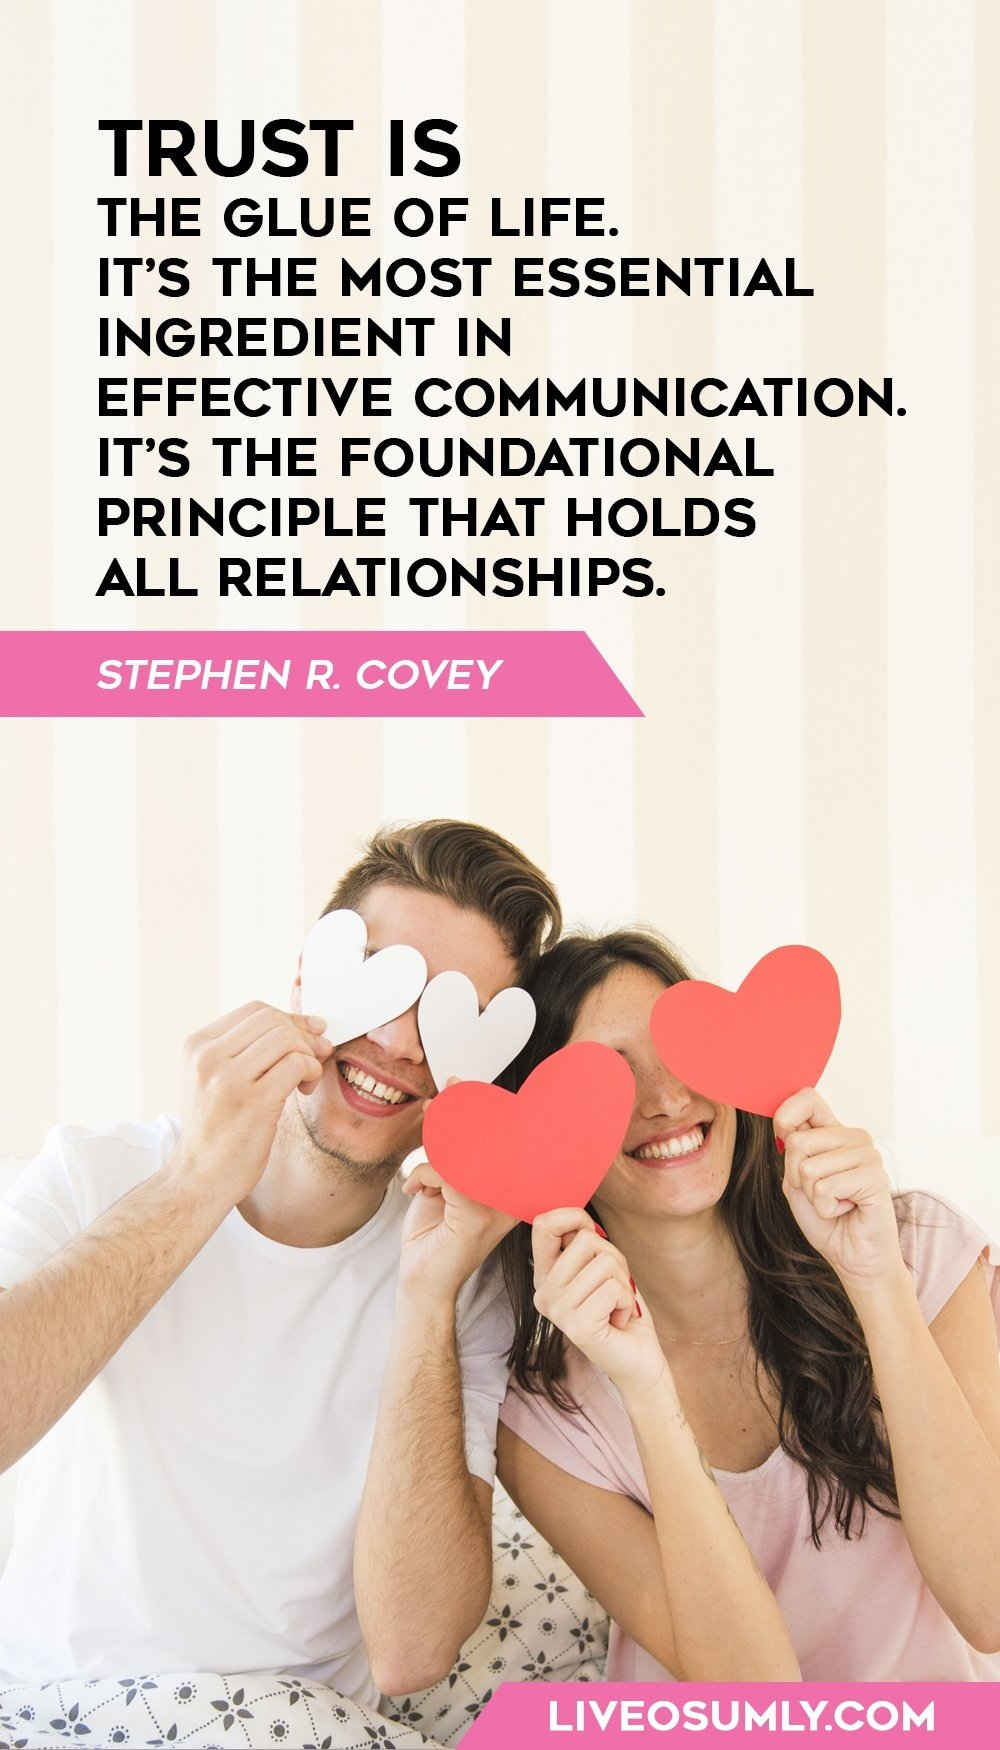 Stephen R. Covey one of the quotes about Trust in a Relationship